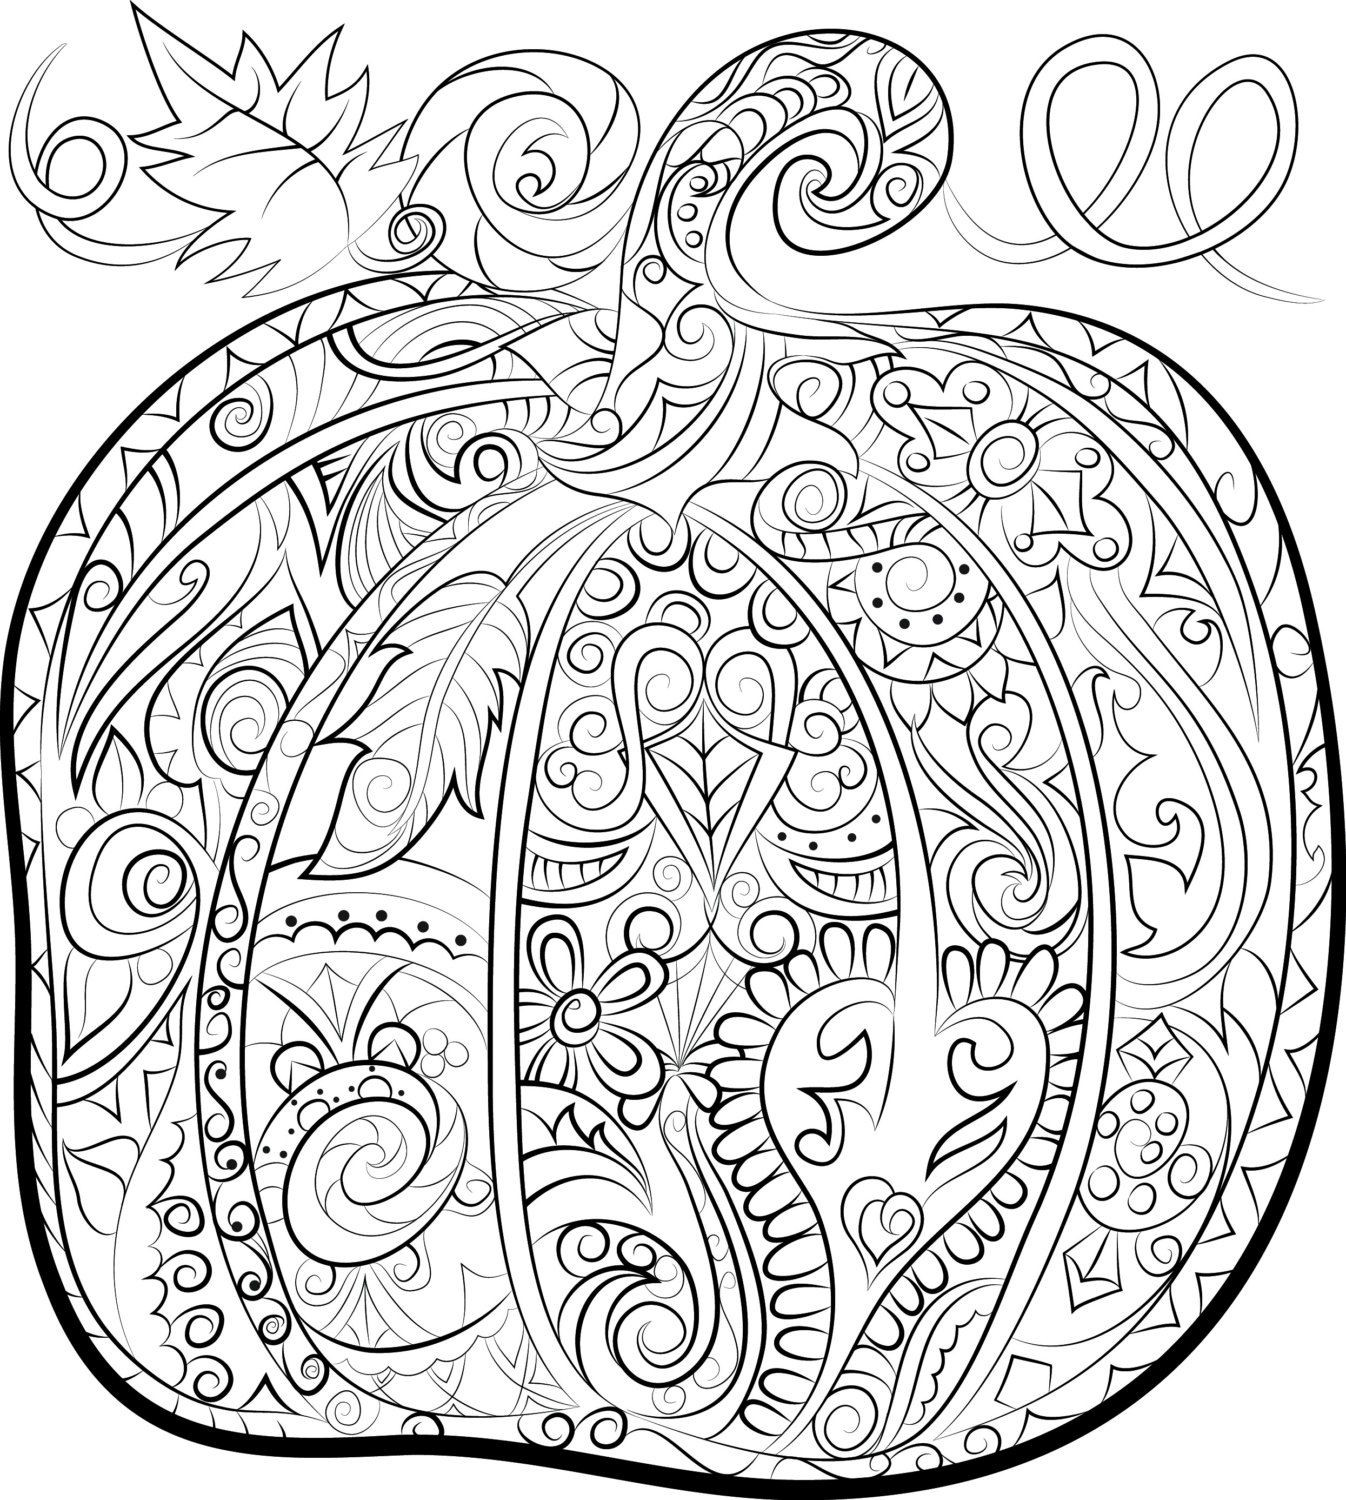 Adult Coloring Book Download  Pumpkin adult colouring page Halloween instant